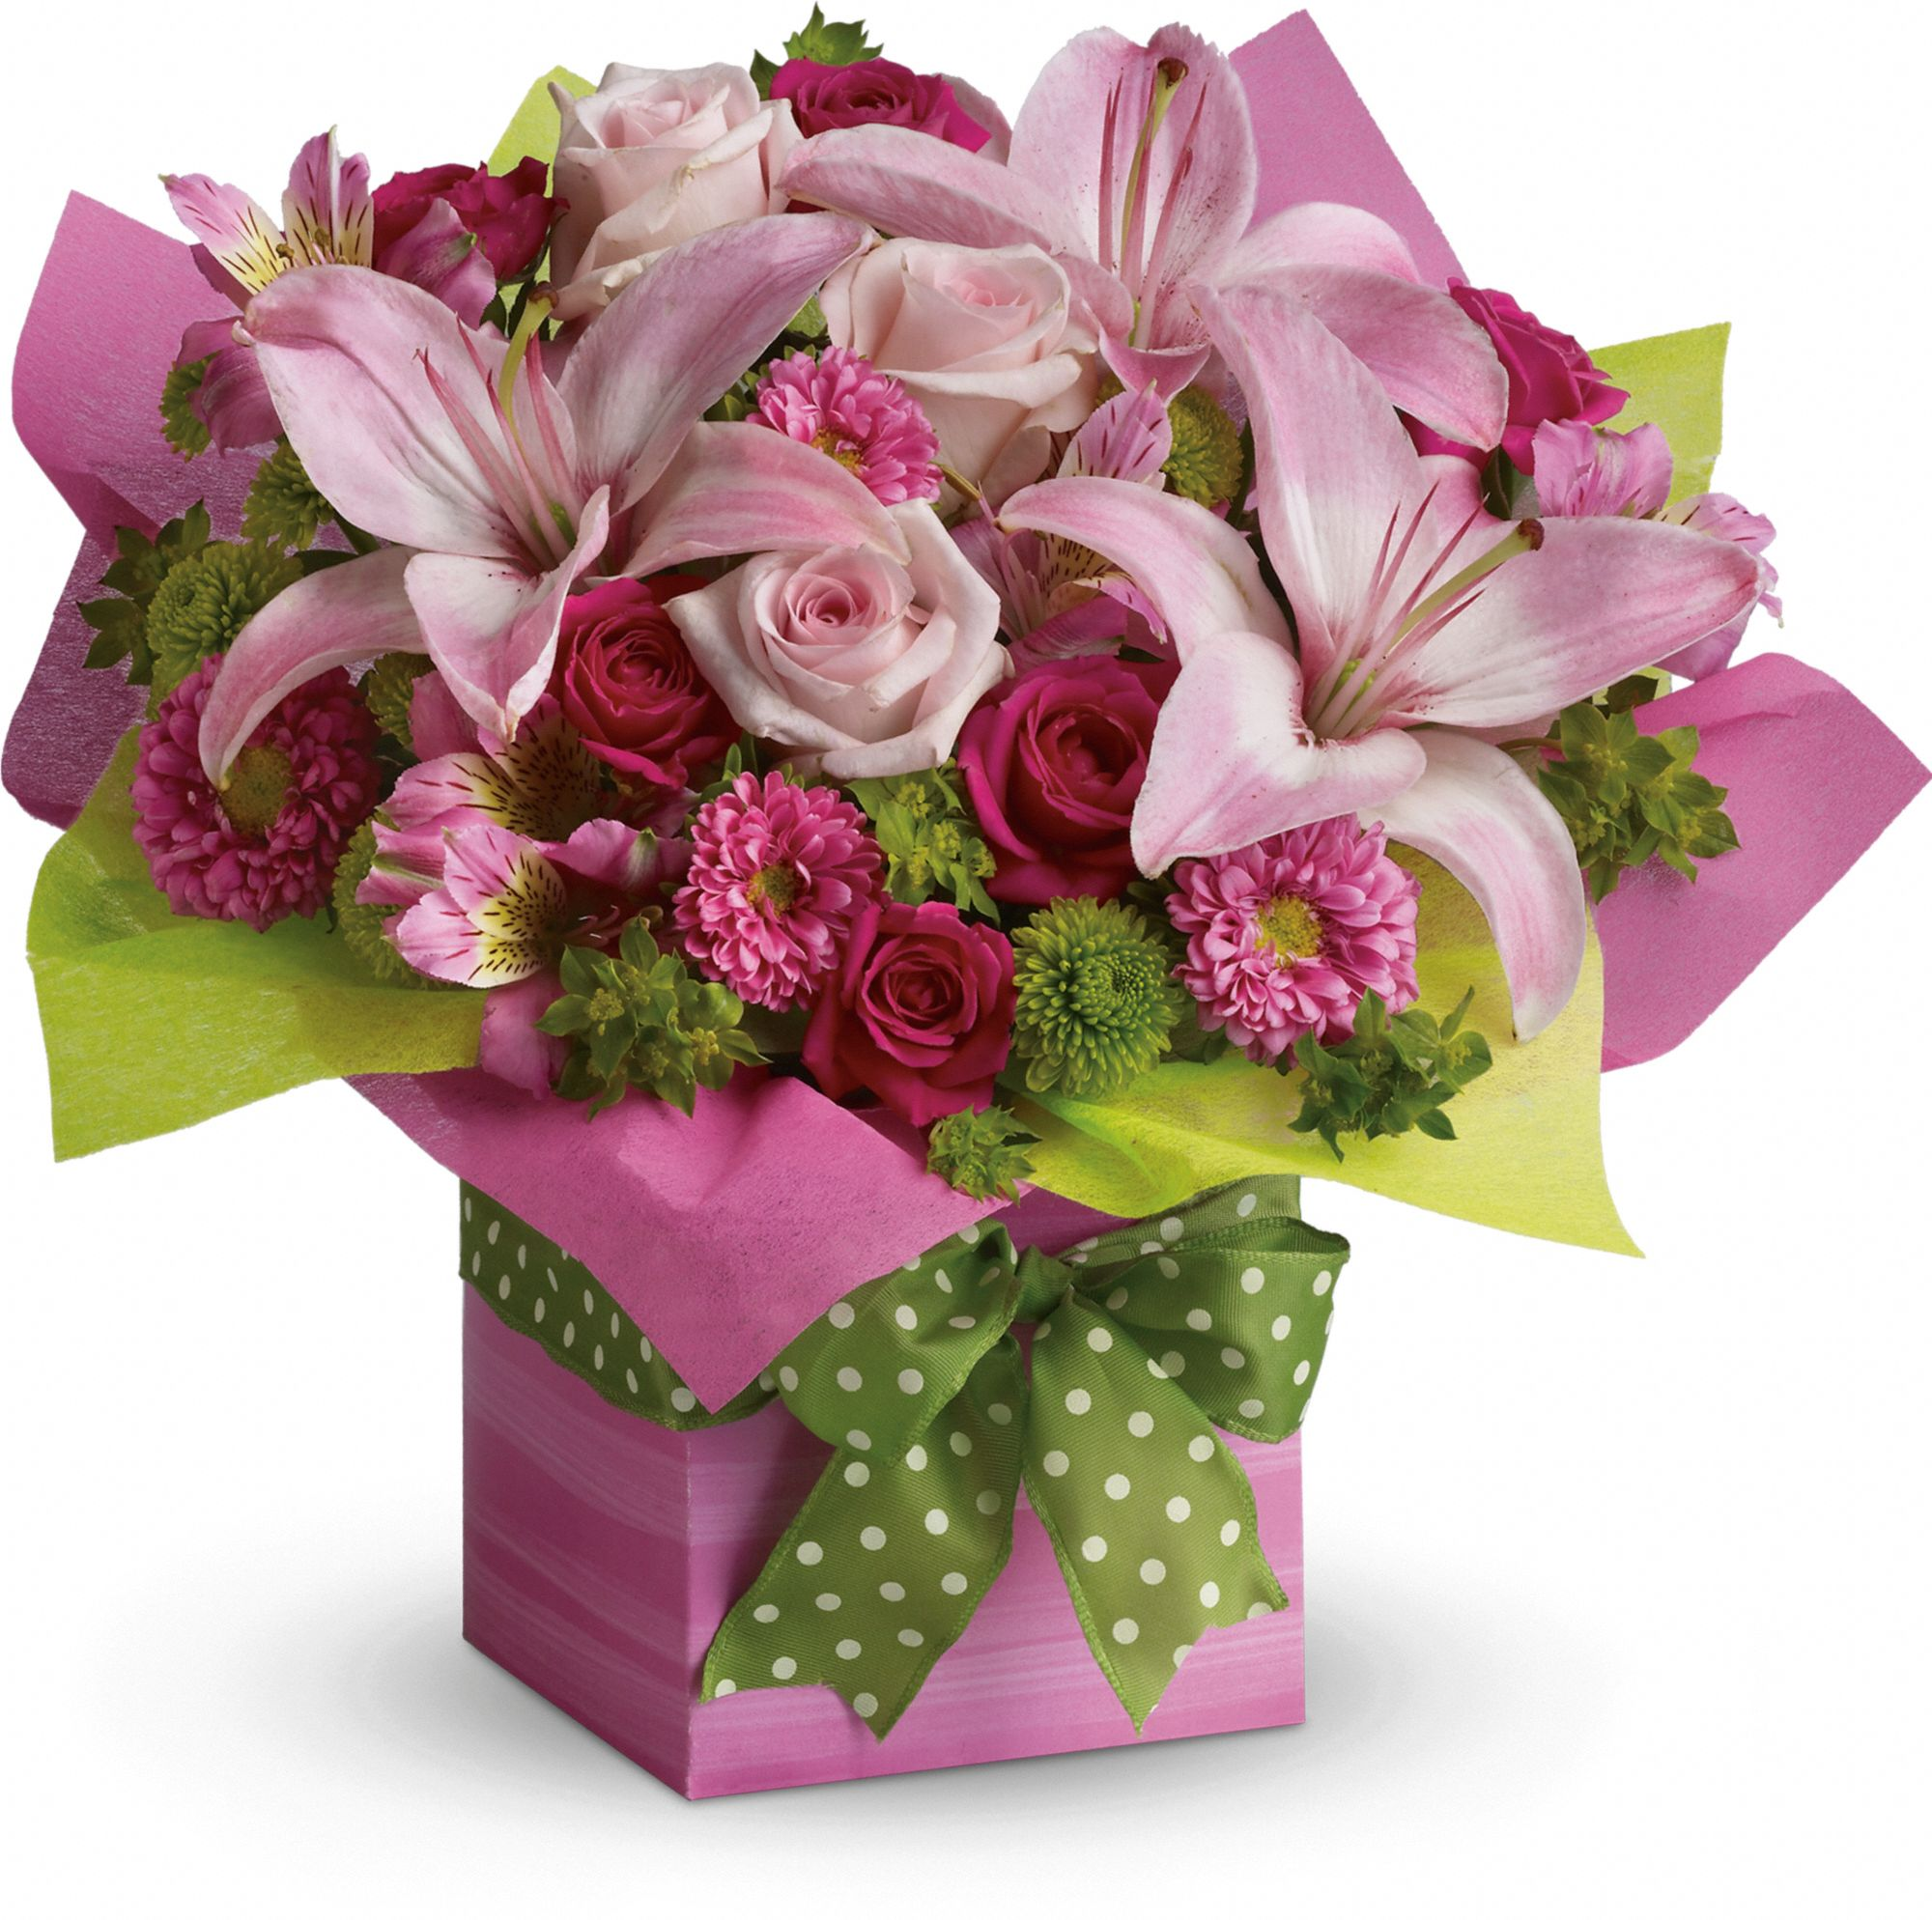 Aug 29, · Teleflora is not a florist. They are a technology company. If you want to send flowers, the best way is to use google to search for a local florist in the area and call them direct.